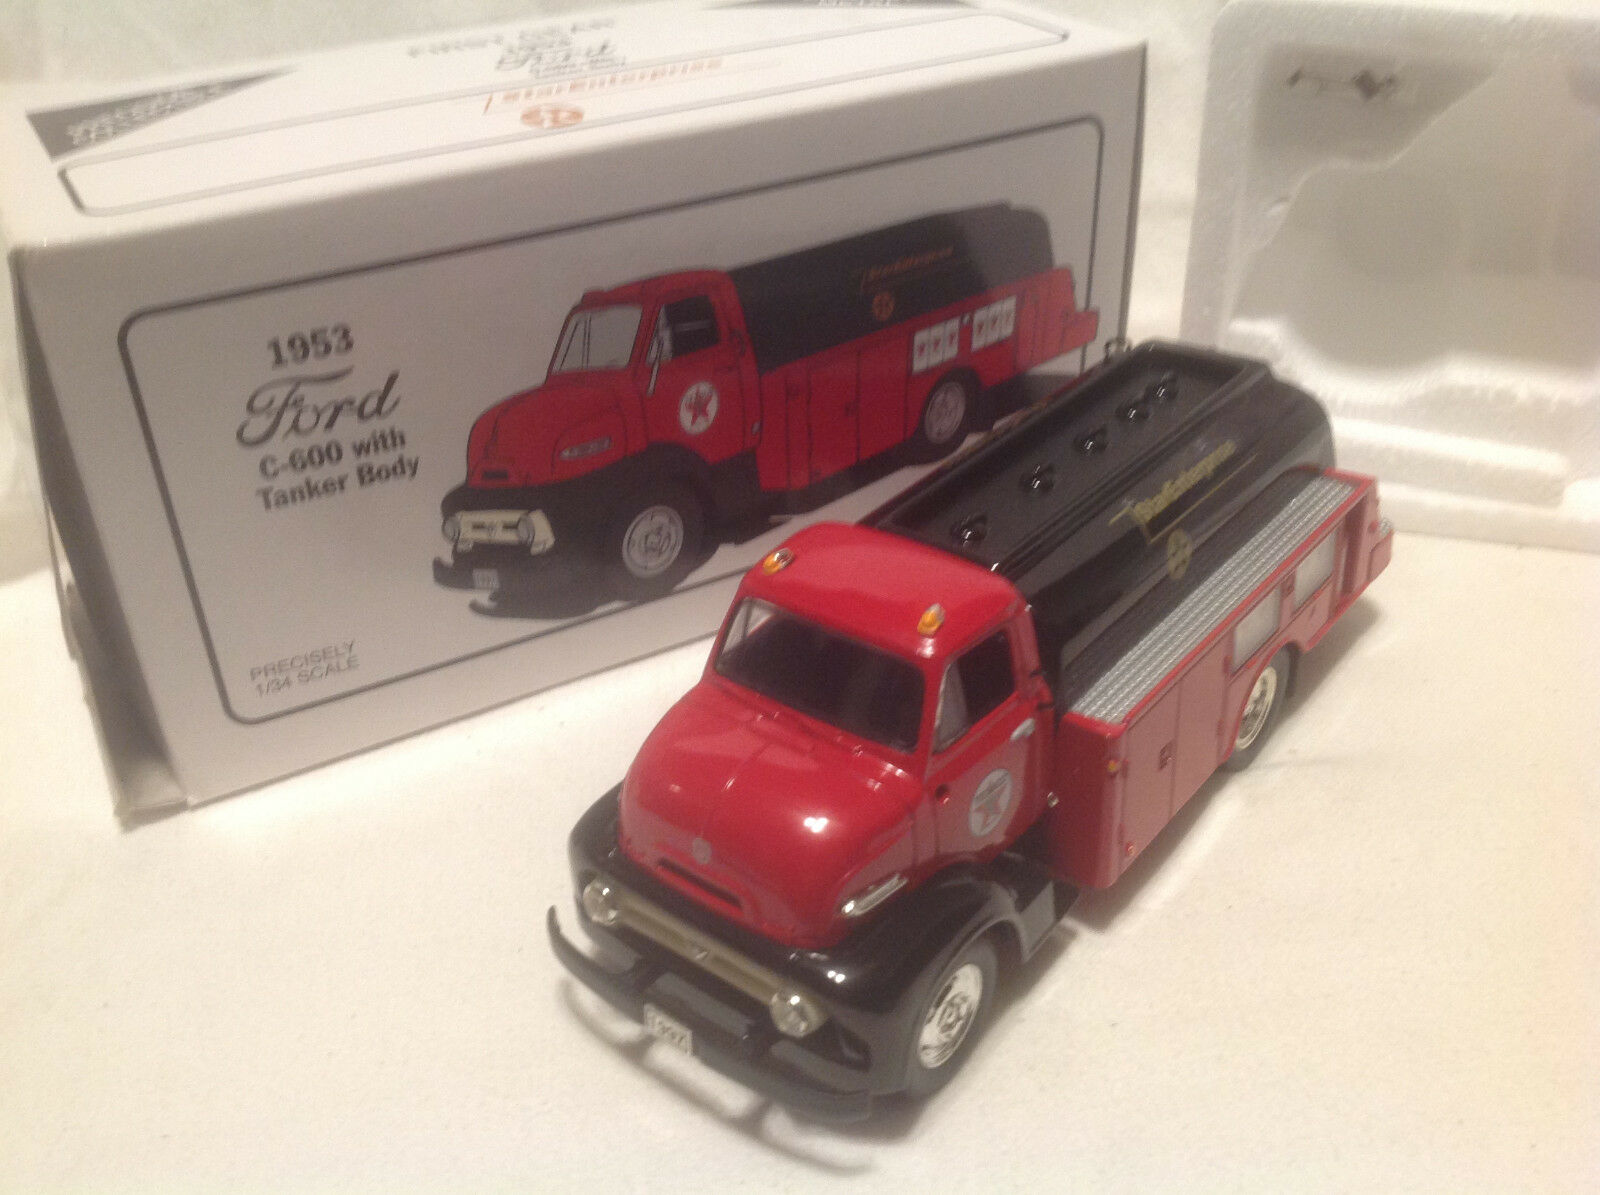 TEXACO STAR ENTERPRISE 1953 FORD COE TANKER FIRST GEAR GEAR GEAR  34 a561f8